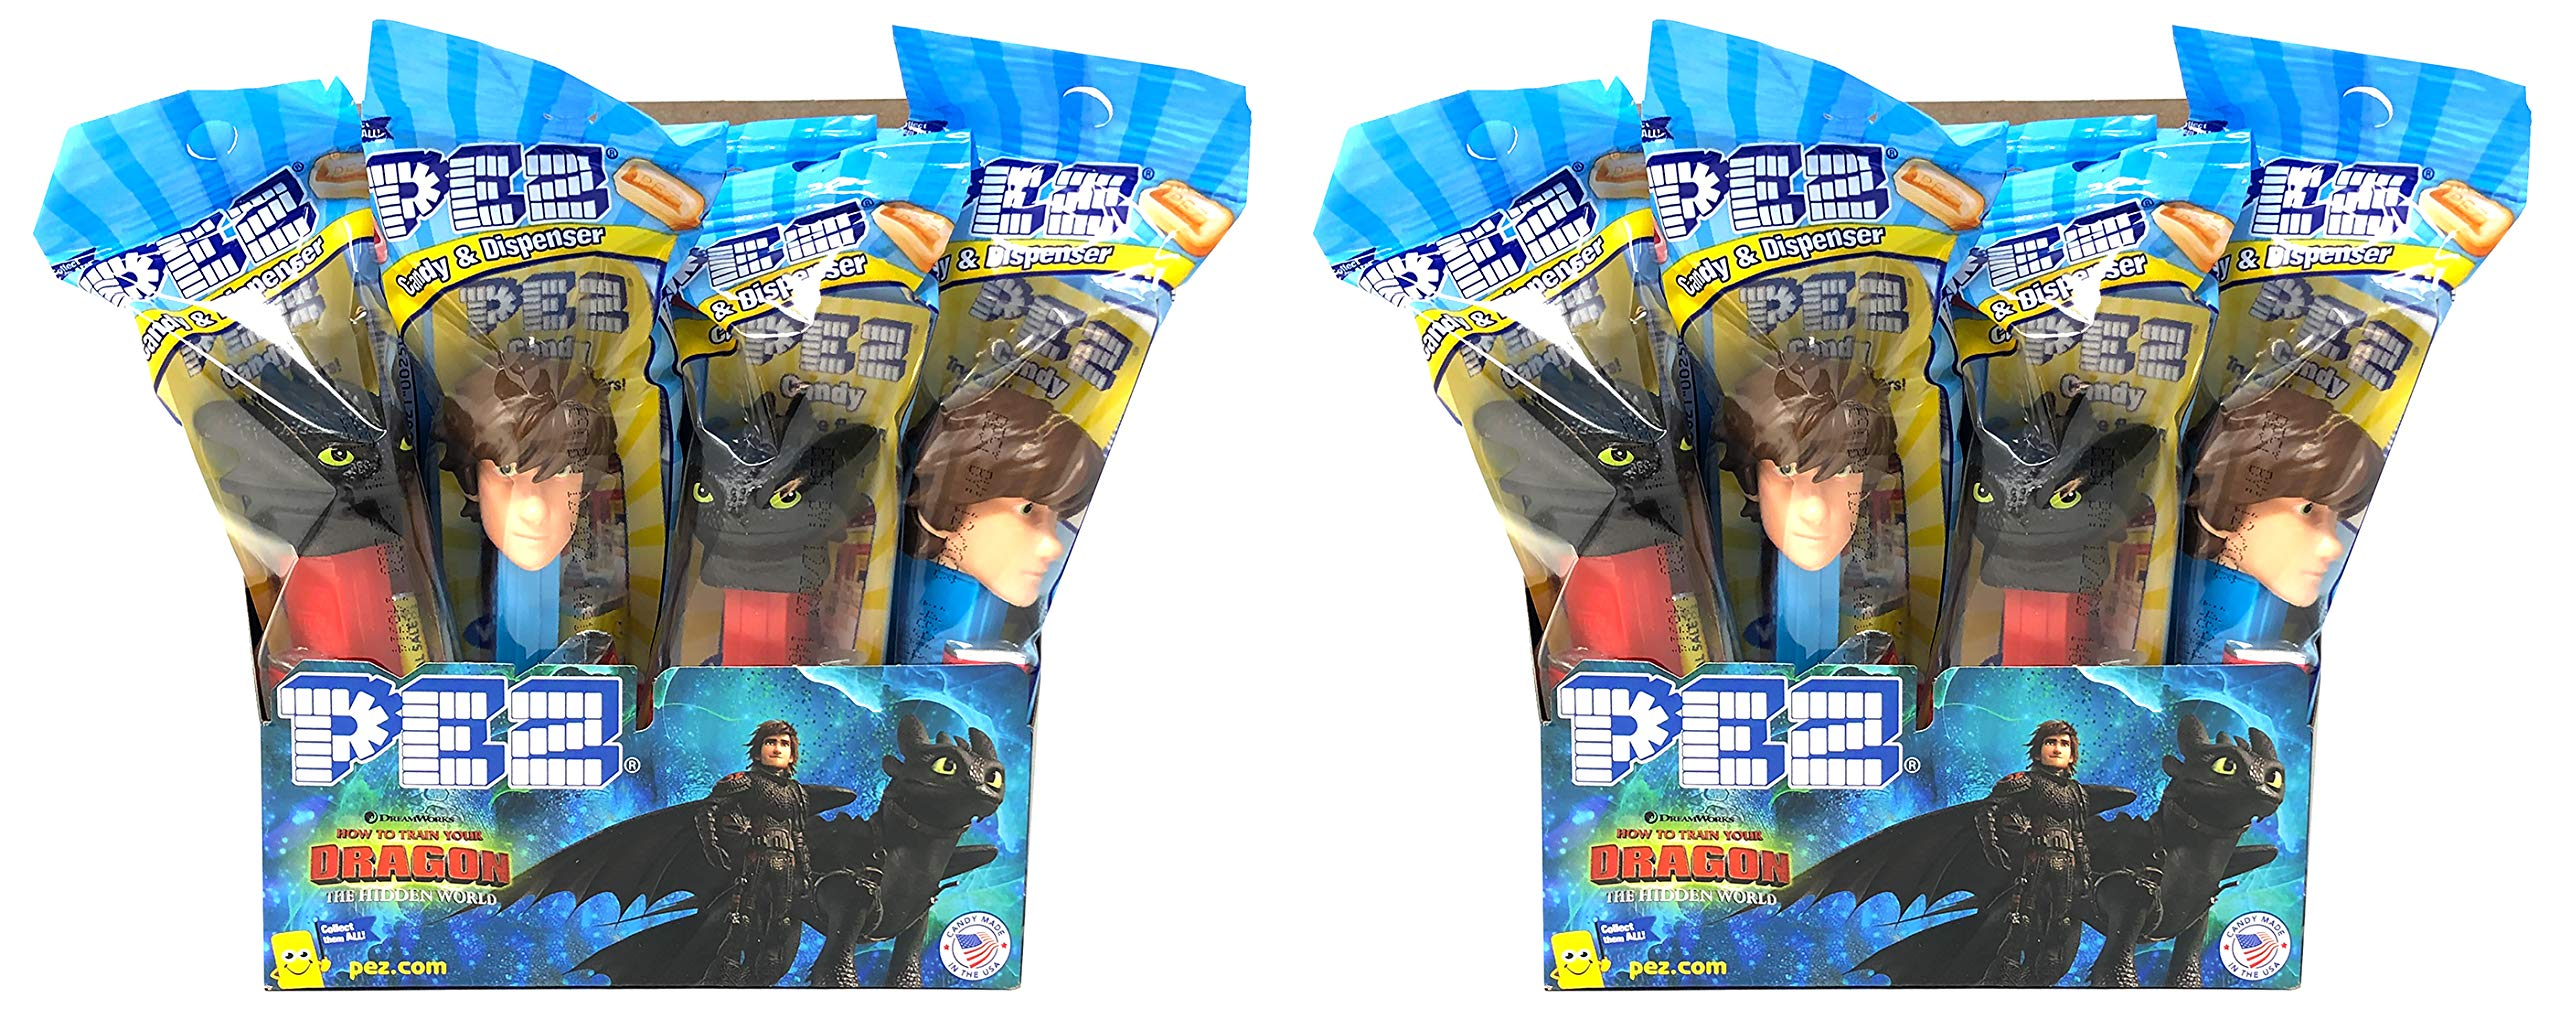 Pez How to Train Your Dragon Candy Dispensers Individually Wrapped Candy and Dispensers with Tru Inertia Kazoo (24 Pack) by Tru Inertia